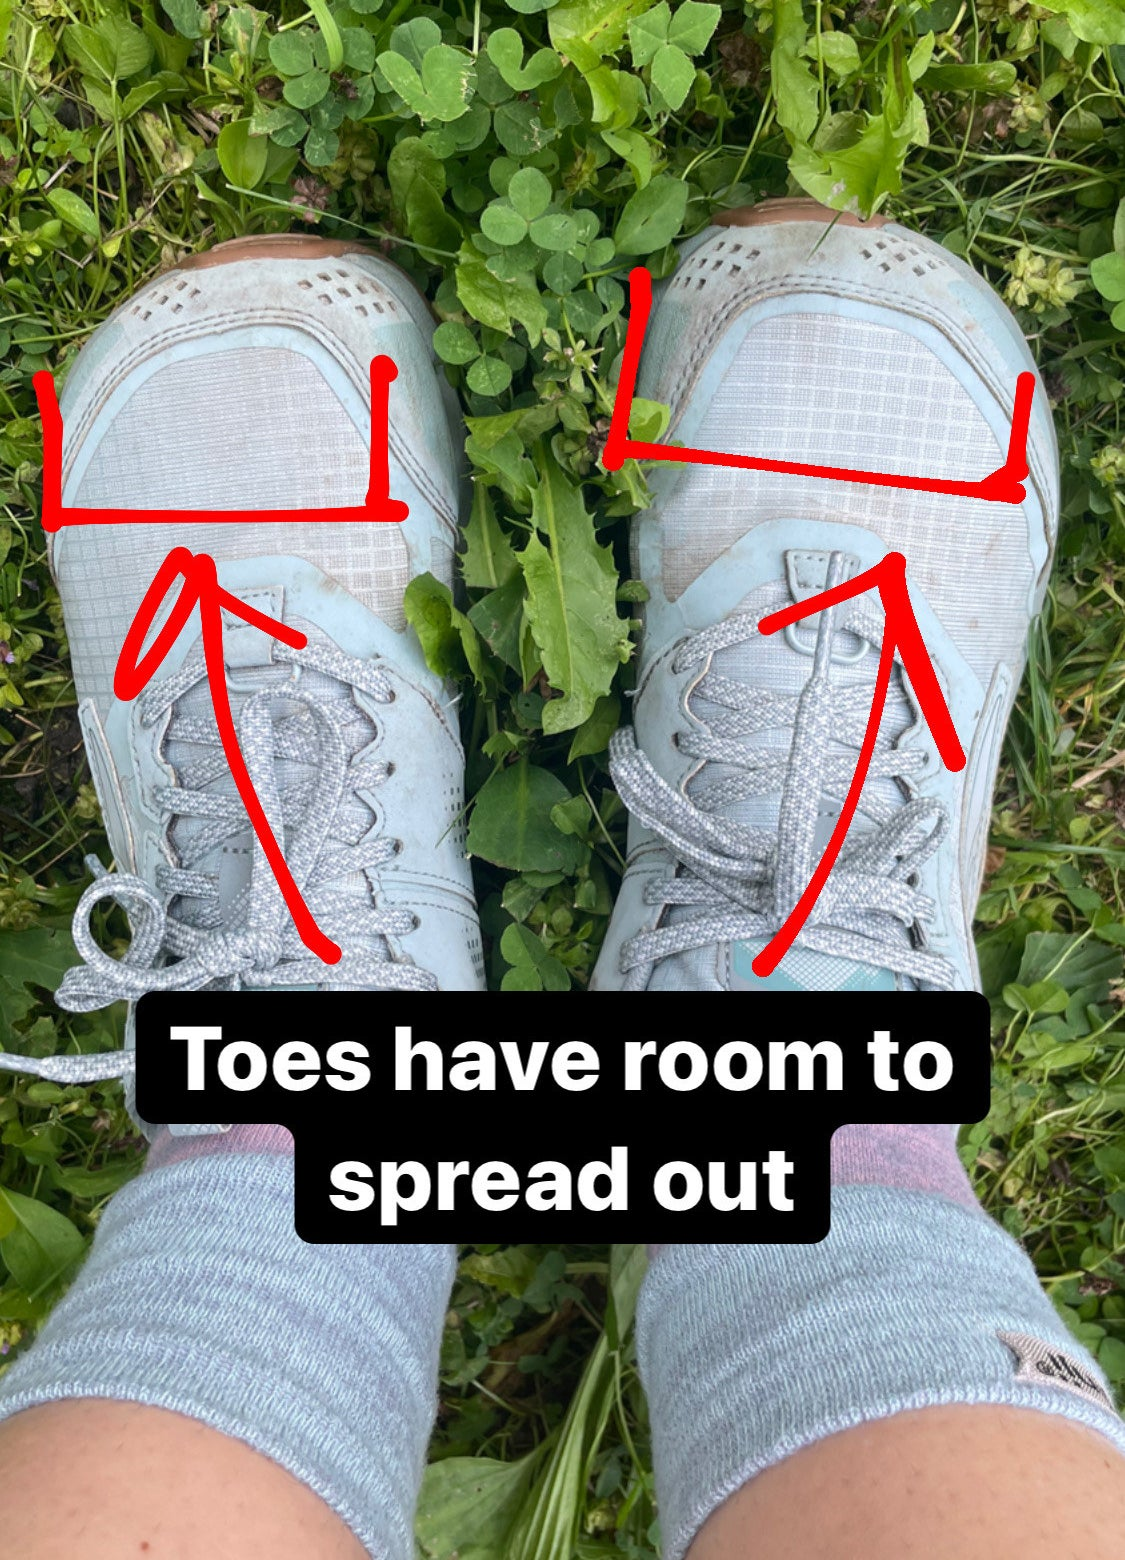 writer in the tow socks and altra trail runners captioned toes have room to spread out with arrows illustrating where her toes are in the shoe's wide toe box